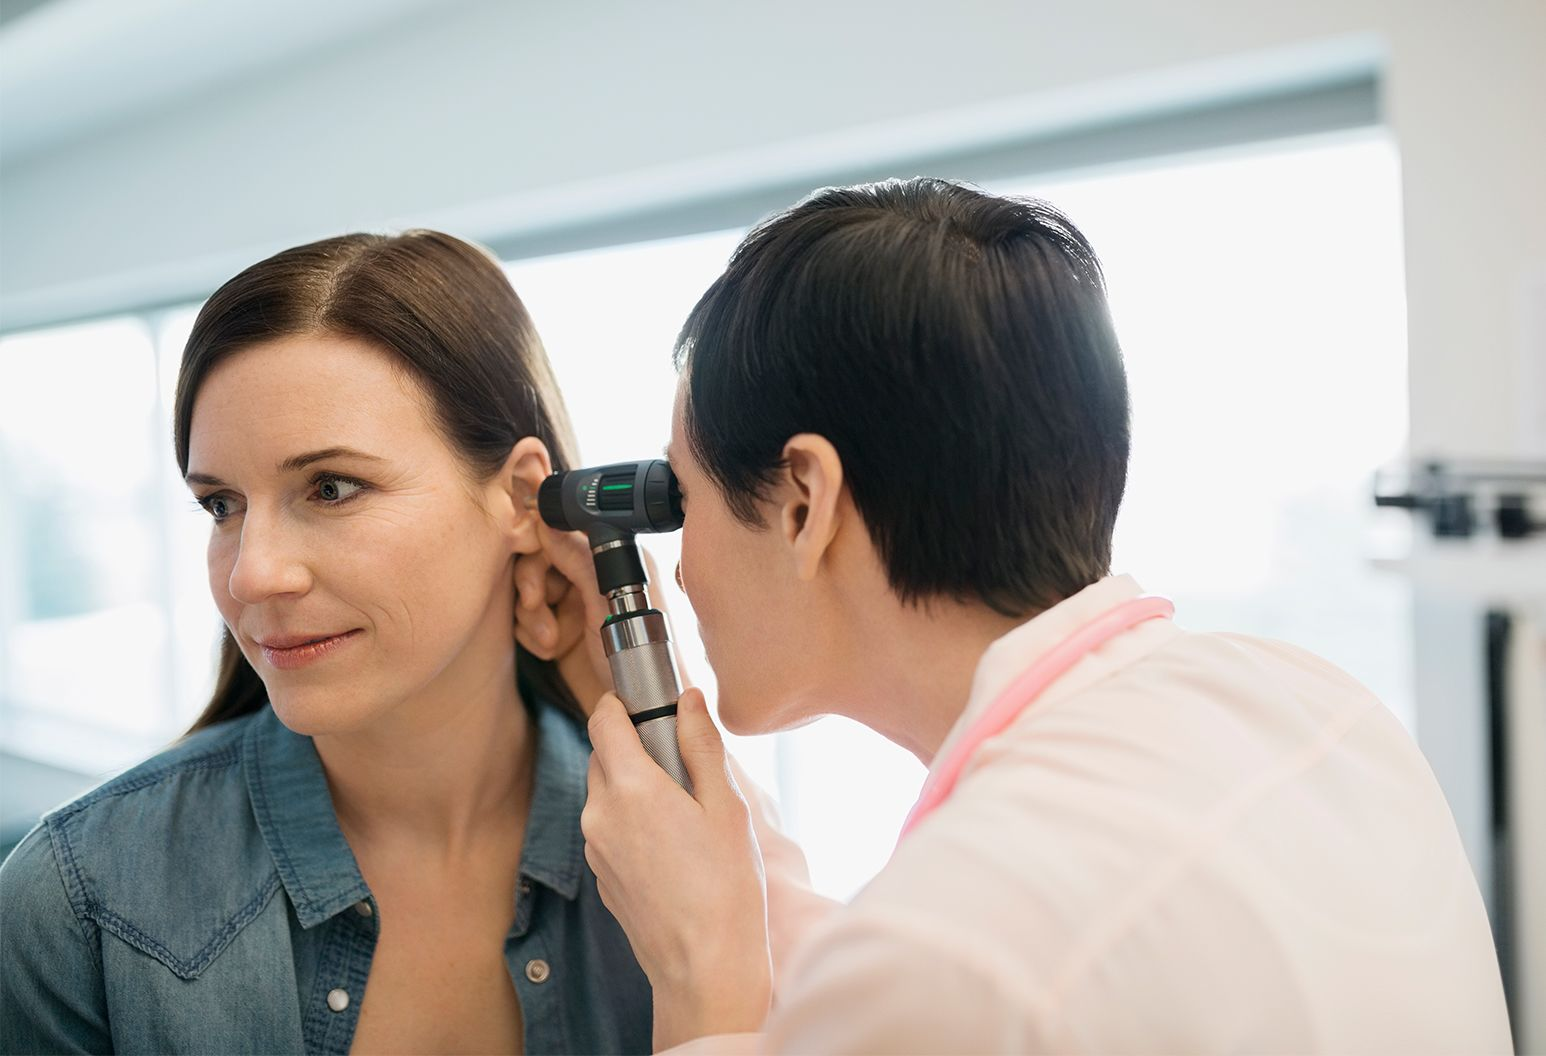 female physician checking the ear of a patient with otoscope